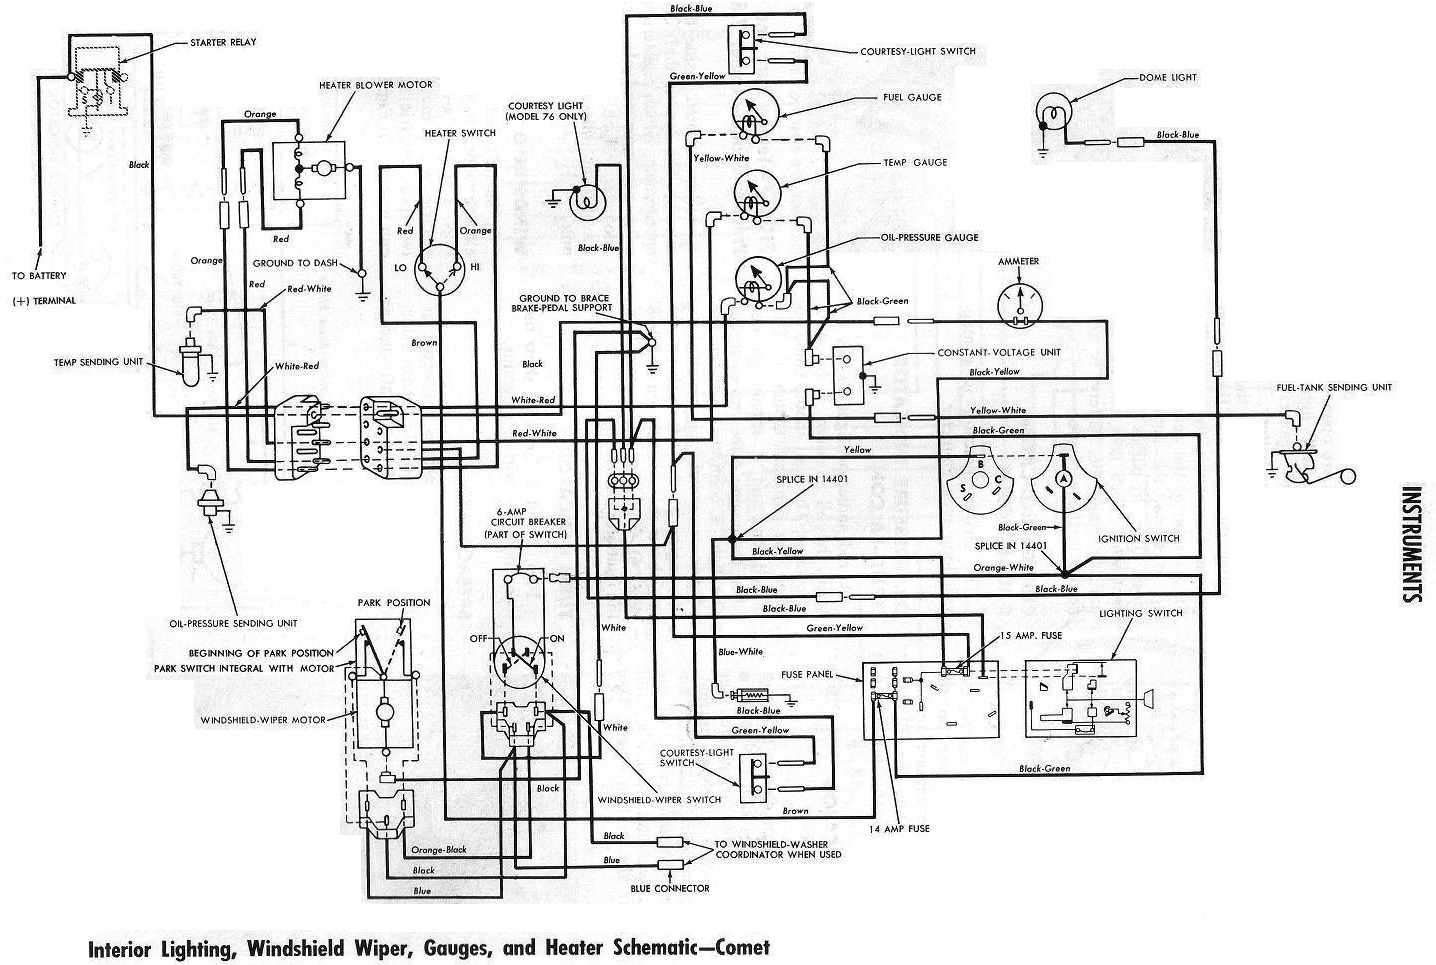 wiring diagram 1963 ford falcon sprint smart wiring diagrams u2022 rh emgsolutions co